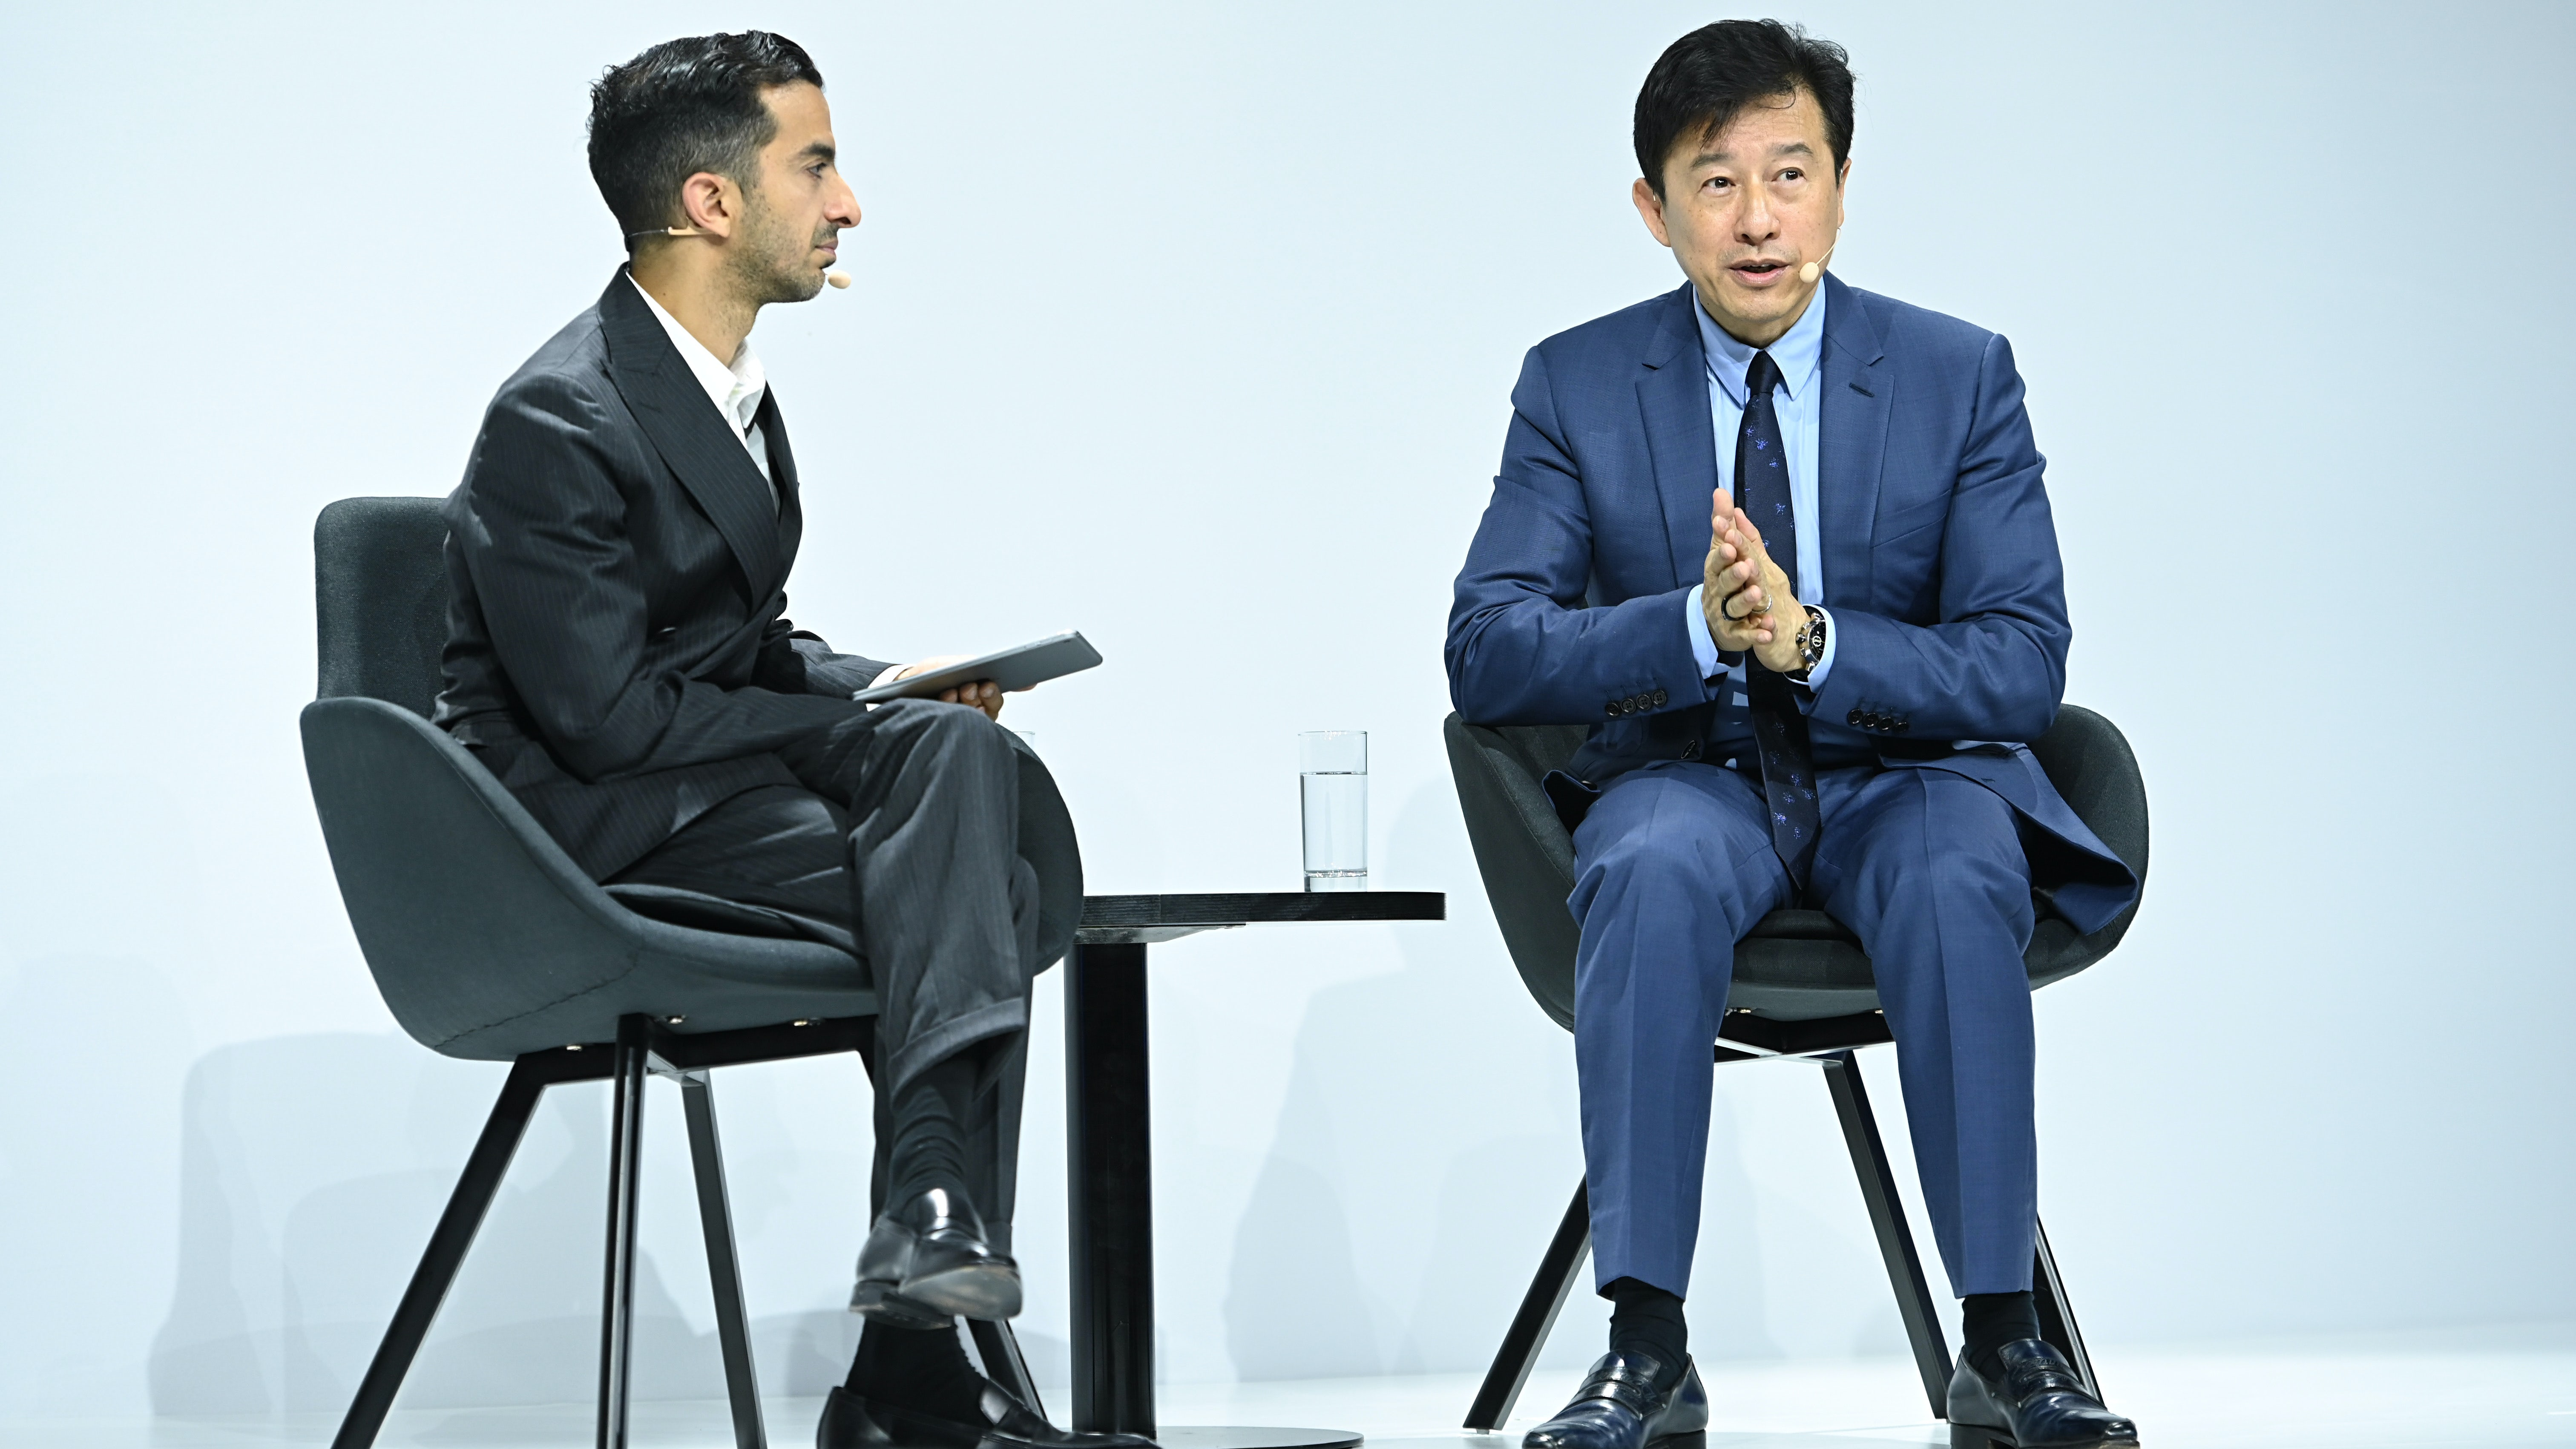 Imran Amed and Andrew Wu on stage at BoF's China Summit in Shanghai | Source: Getty Images for The Business of Fashion